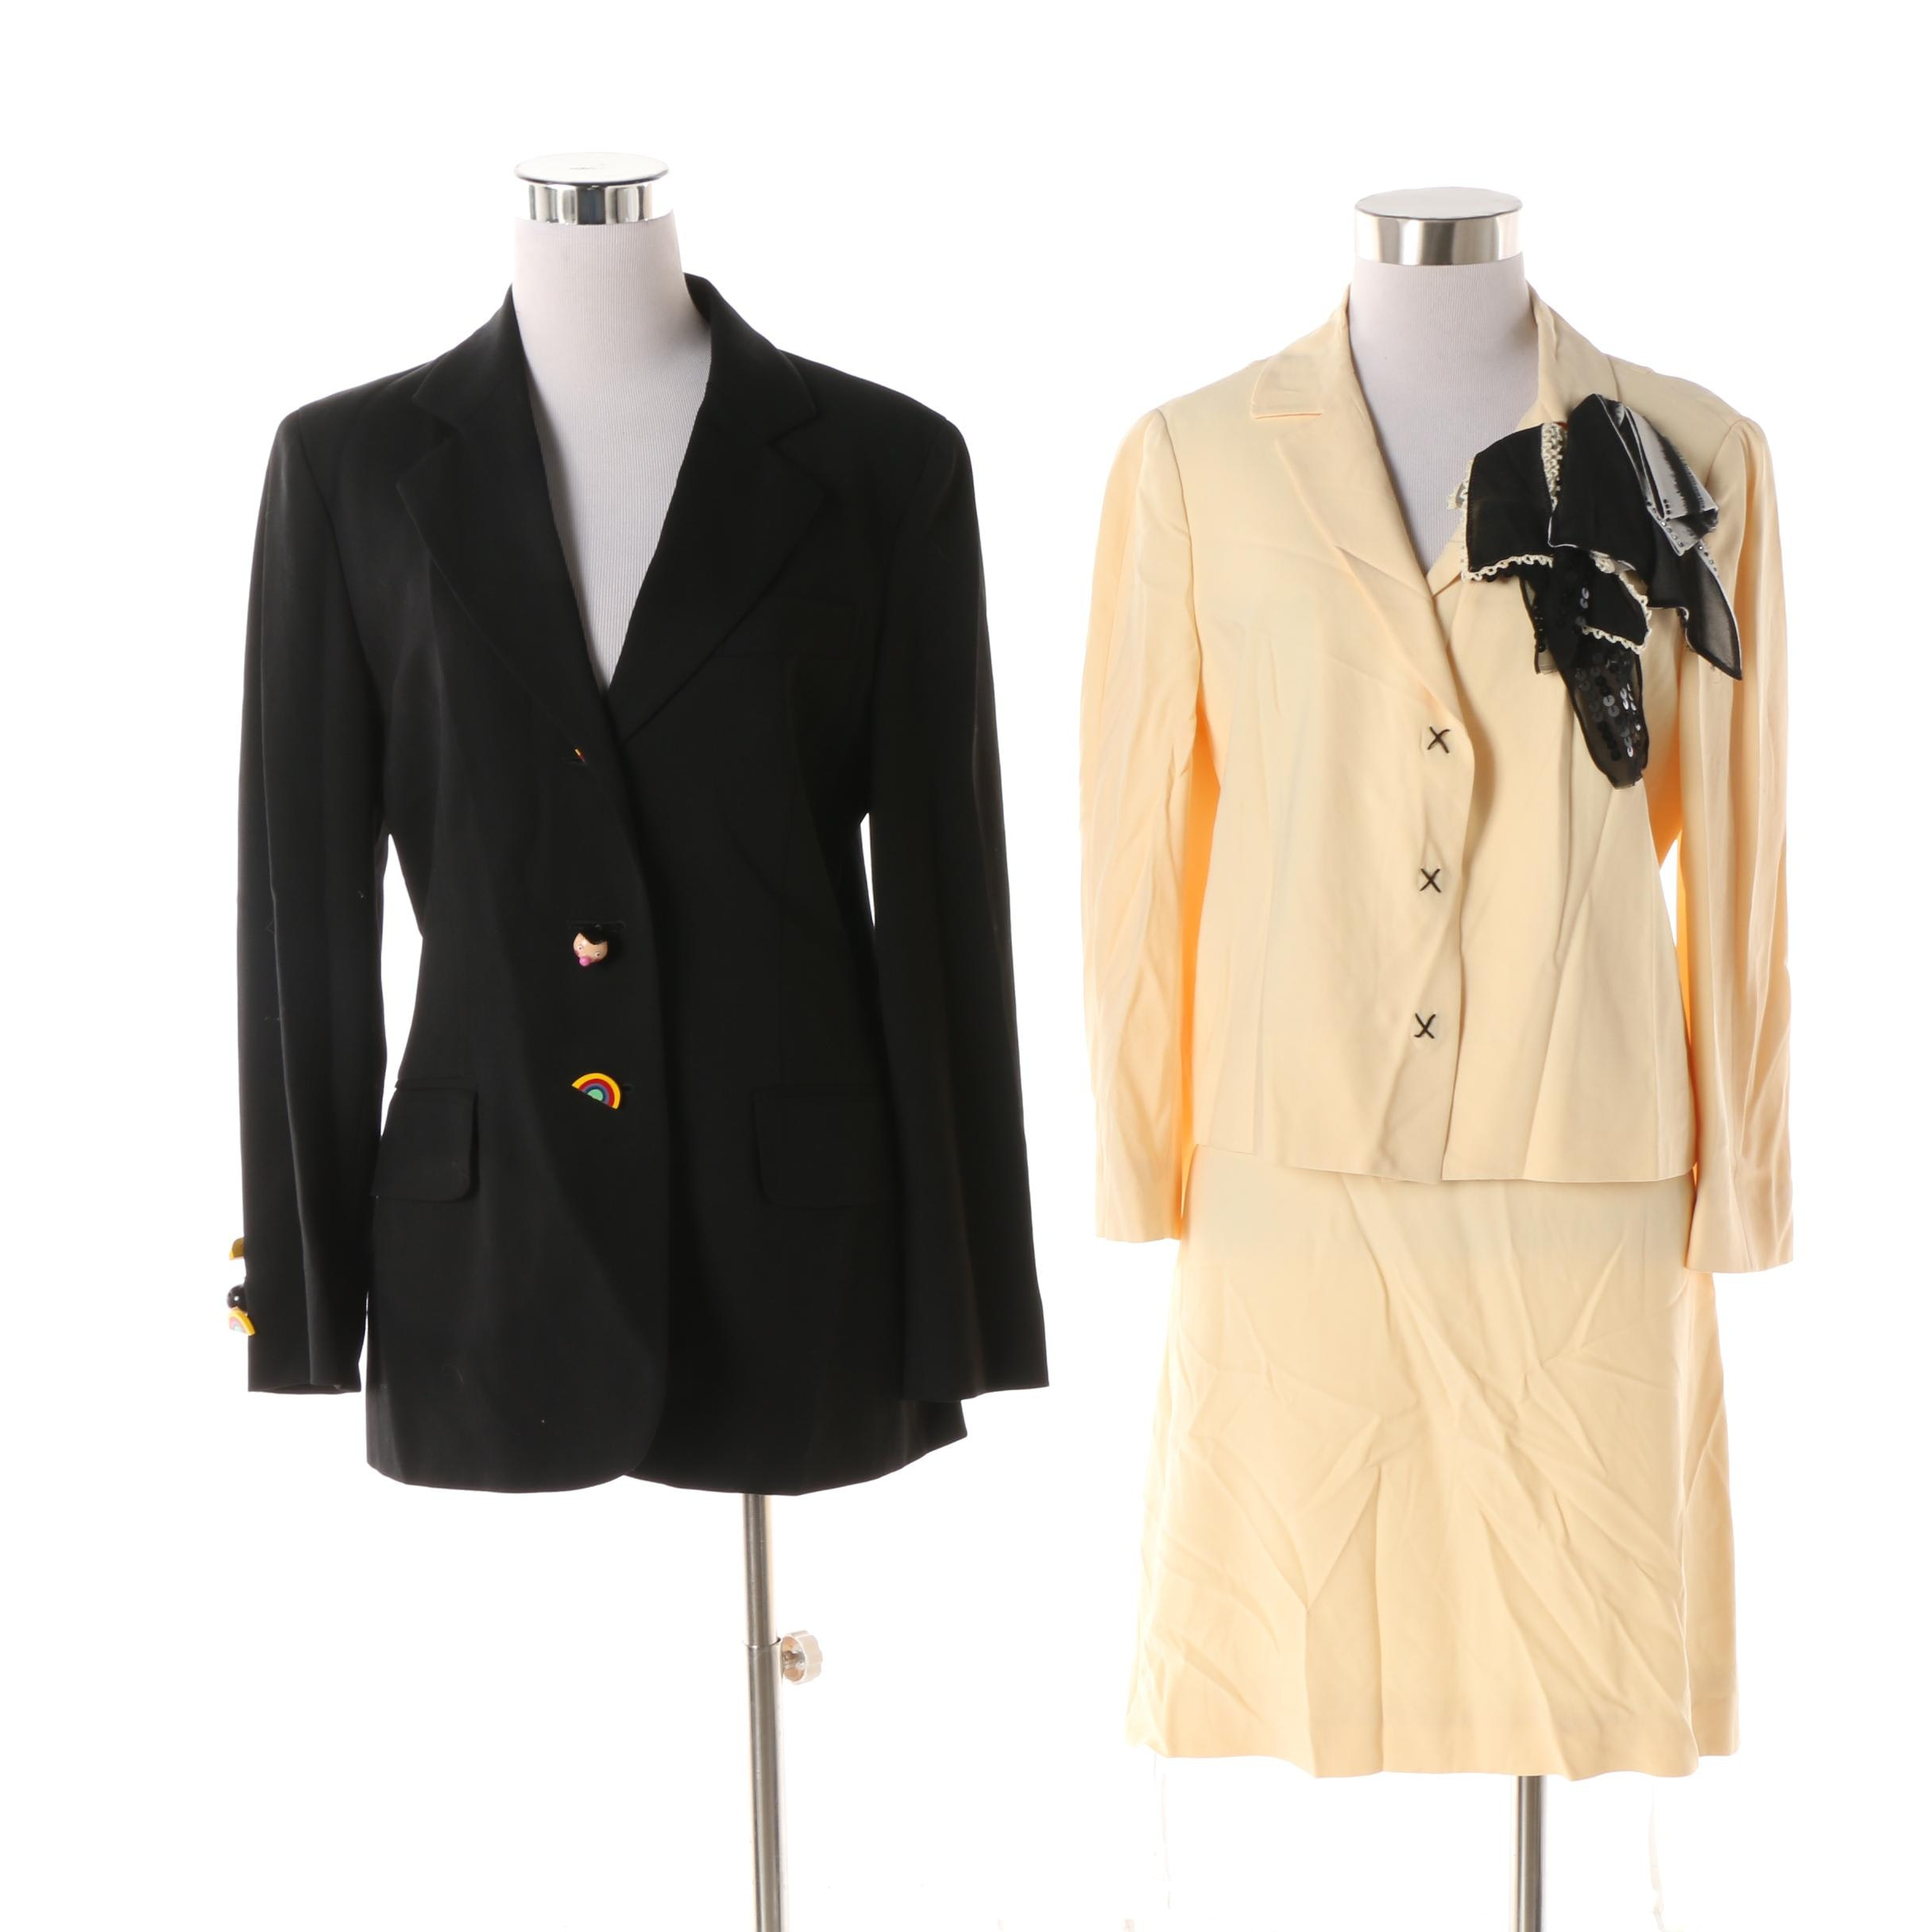 Women's Circa 1990 Vintage Moschino Cheap and Chic Skirt Suit and Jacket